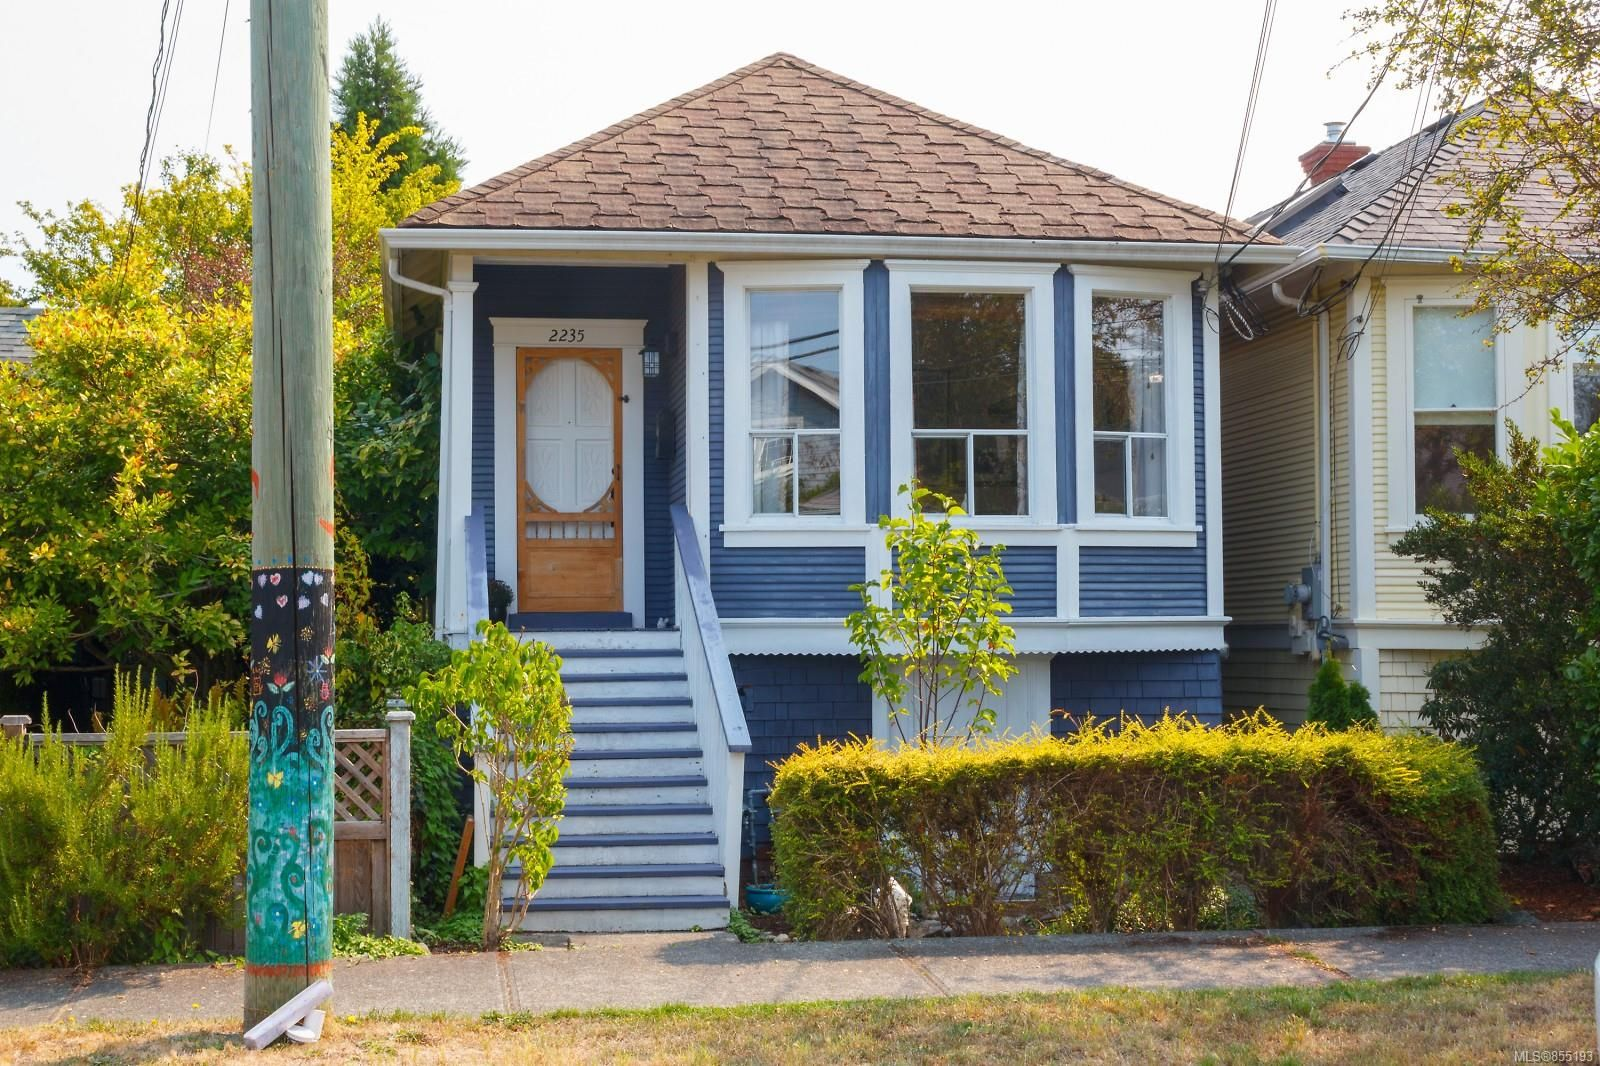 Main Photo: 2235 Shakespeare St in : Vi Fernwood House for sale (Victoria)  : MLS®# 855193